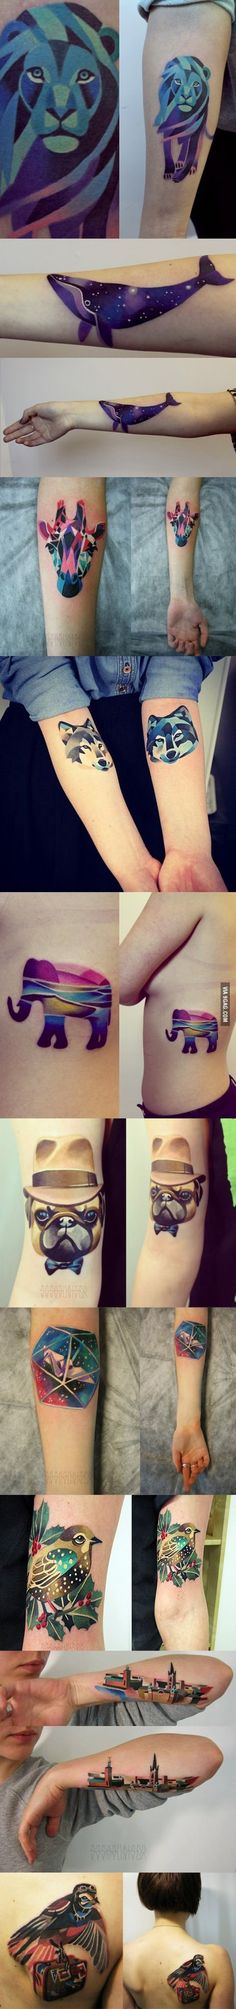 Pretty f'kin cool tattoos - 9GAG